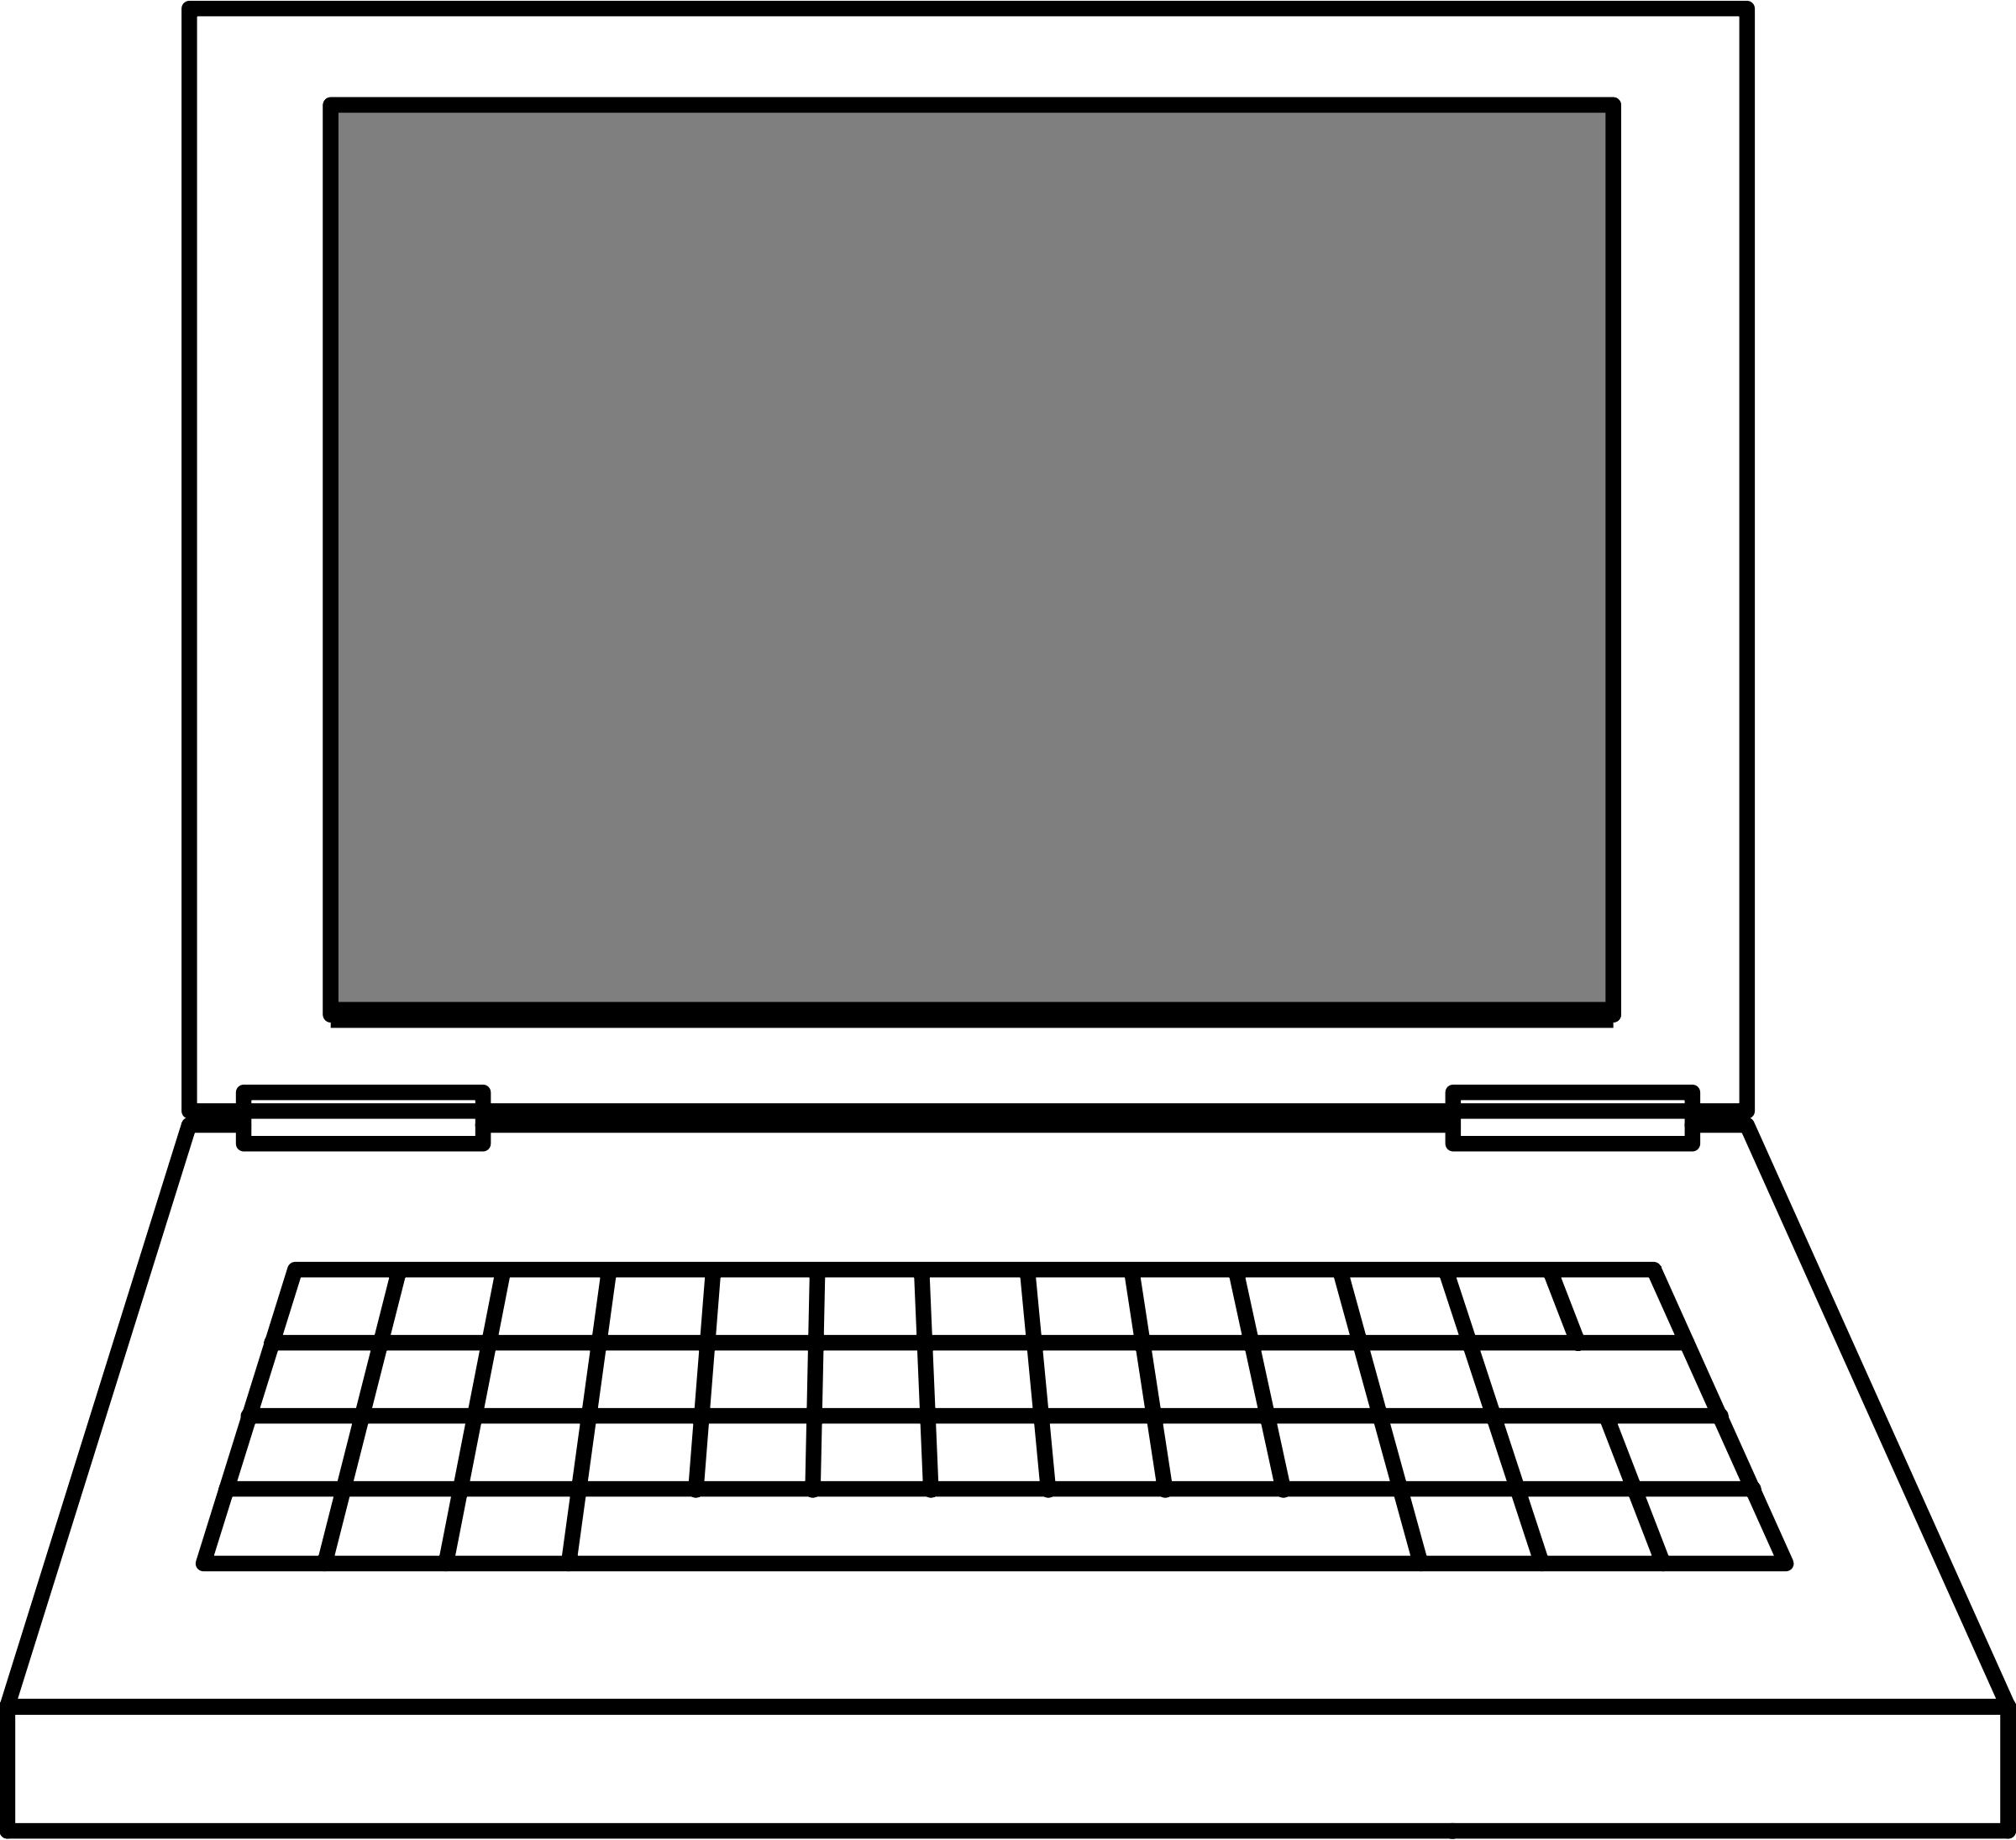 Background clipart computer. No clip art library